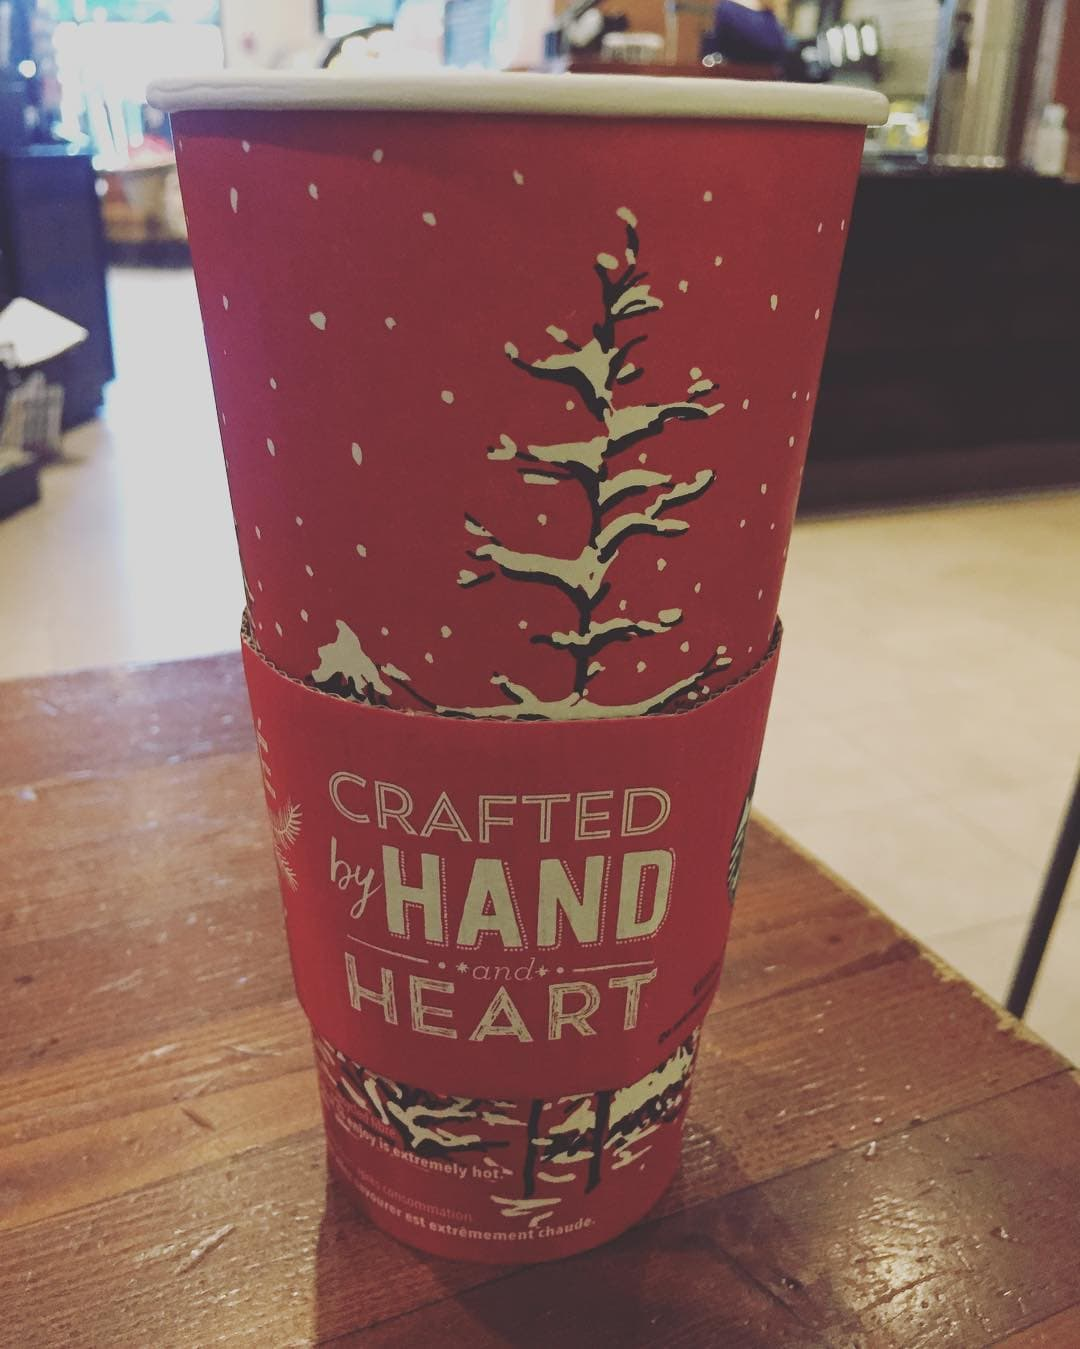 Christmas has arrived at #Starbucks